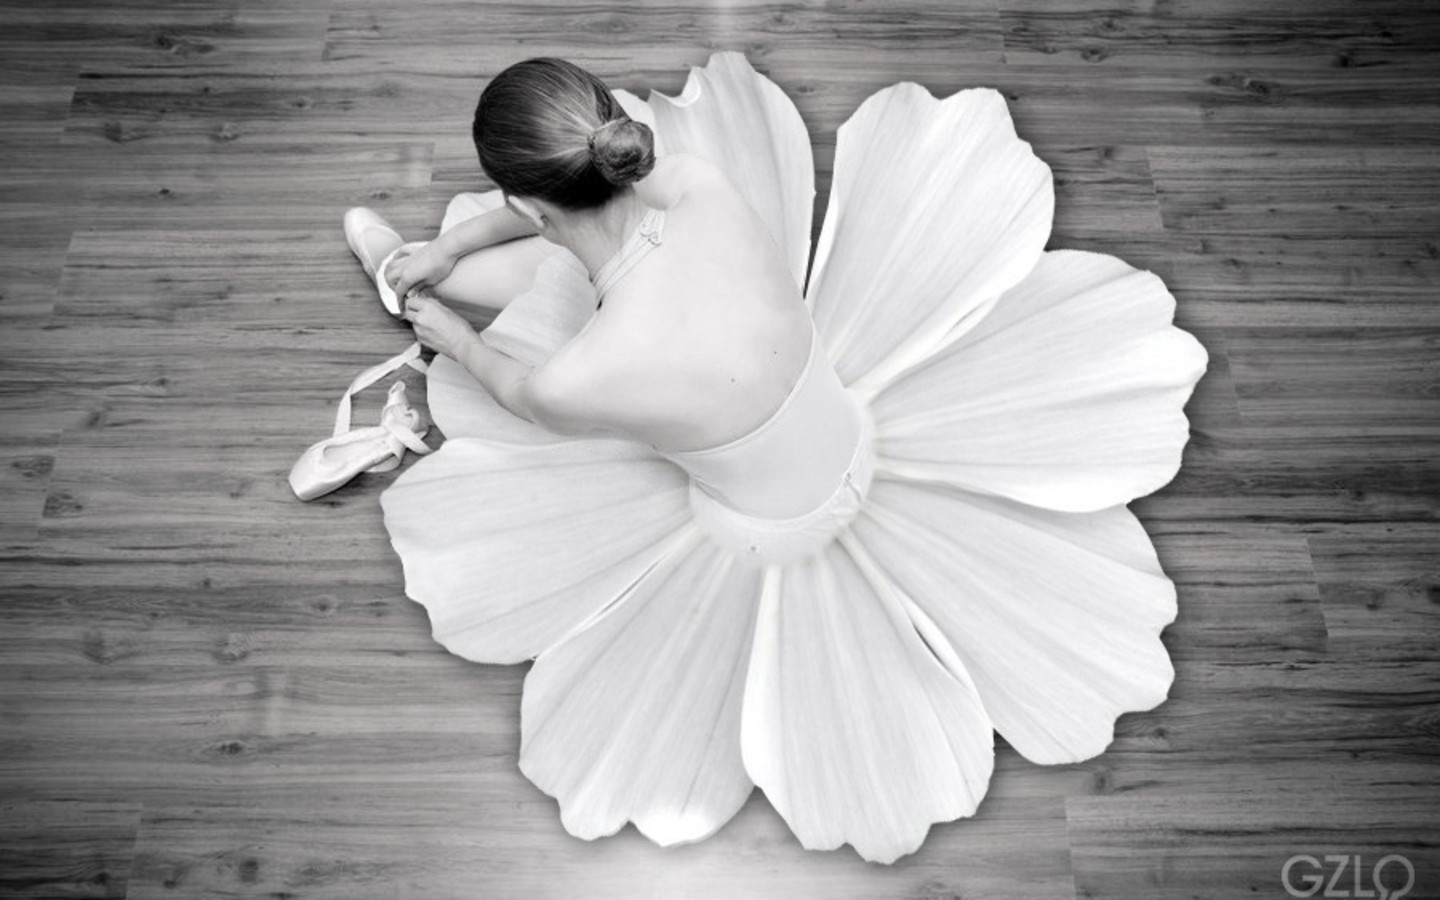 Ballet Wallpaper 1440x900 Flowers Ballet Monochrome Dancers Ballet 1440x900